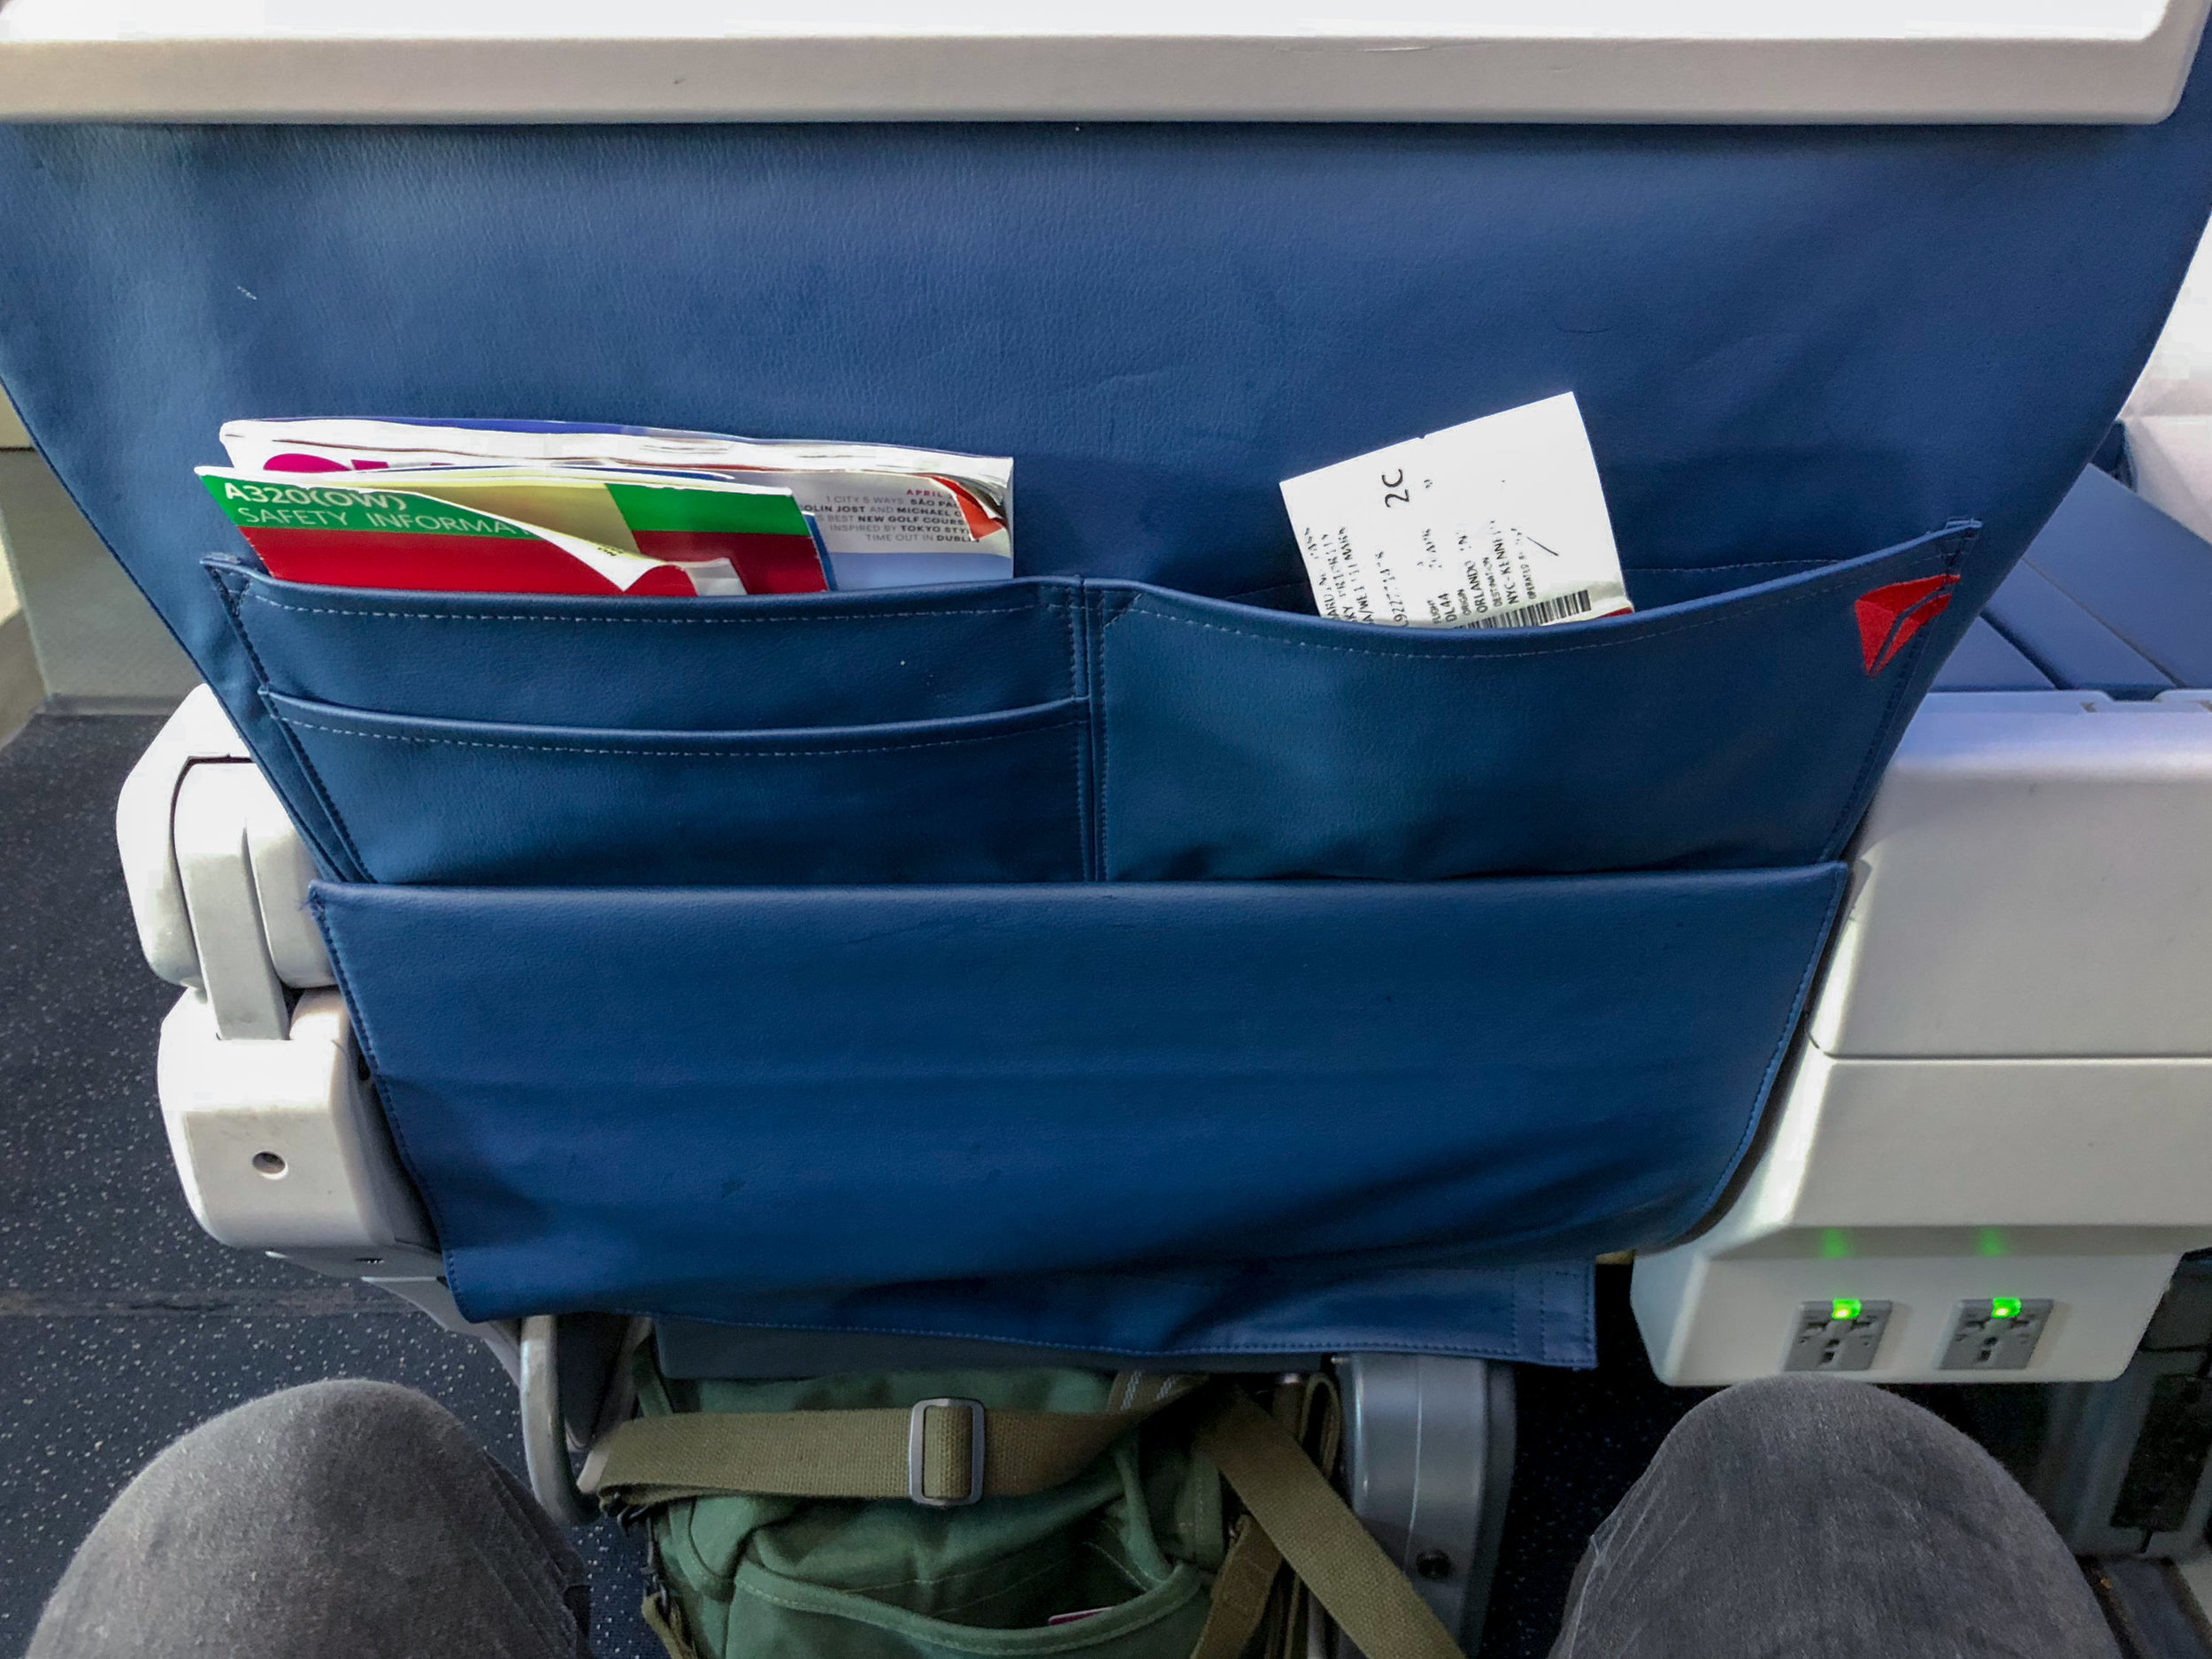 Seat Pocket  Delta Air Lines First Class - MCO to JFK